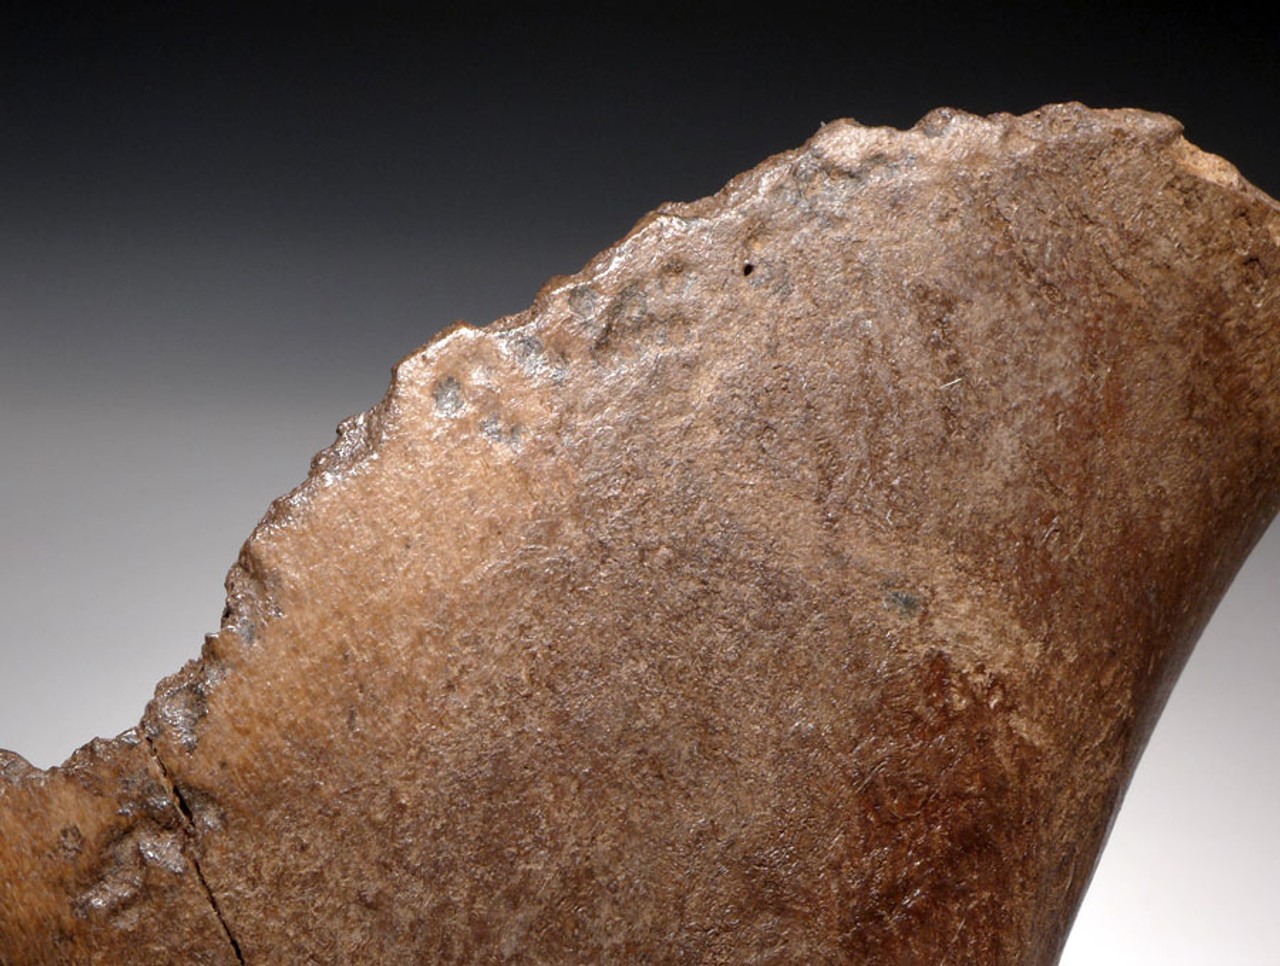 LMX096  - FOSSIL WOOLLY RHINOCEROS PARTIAL HUMERUS BONE EATEN BY GIANT CAVE HYENAS WITH EXTENSIVE BITE MARKS THROUGHOUT